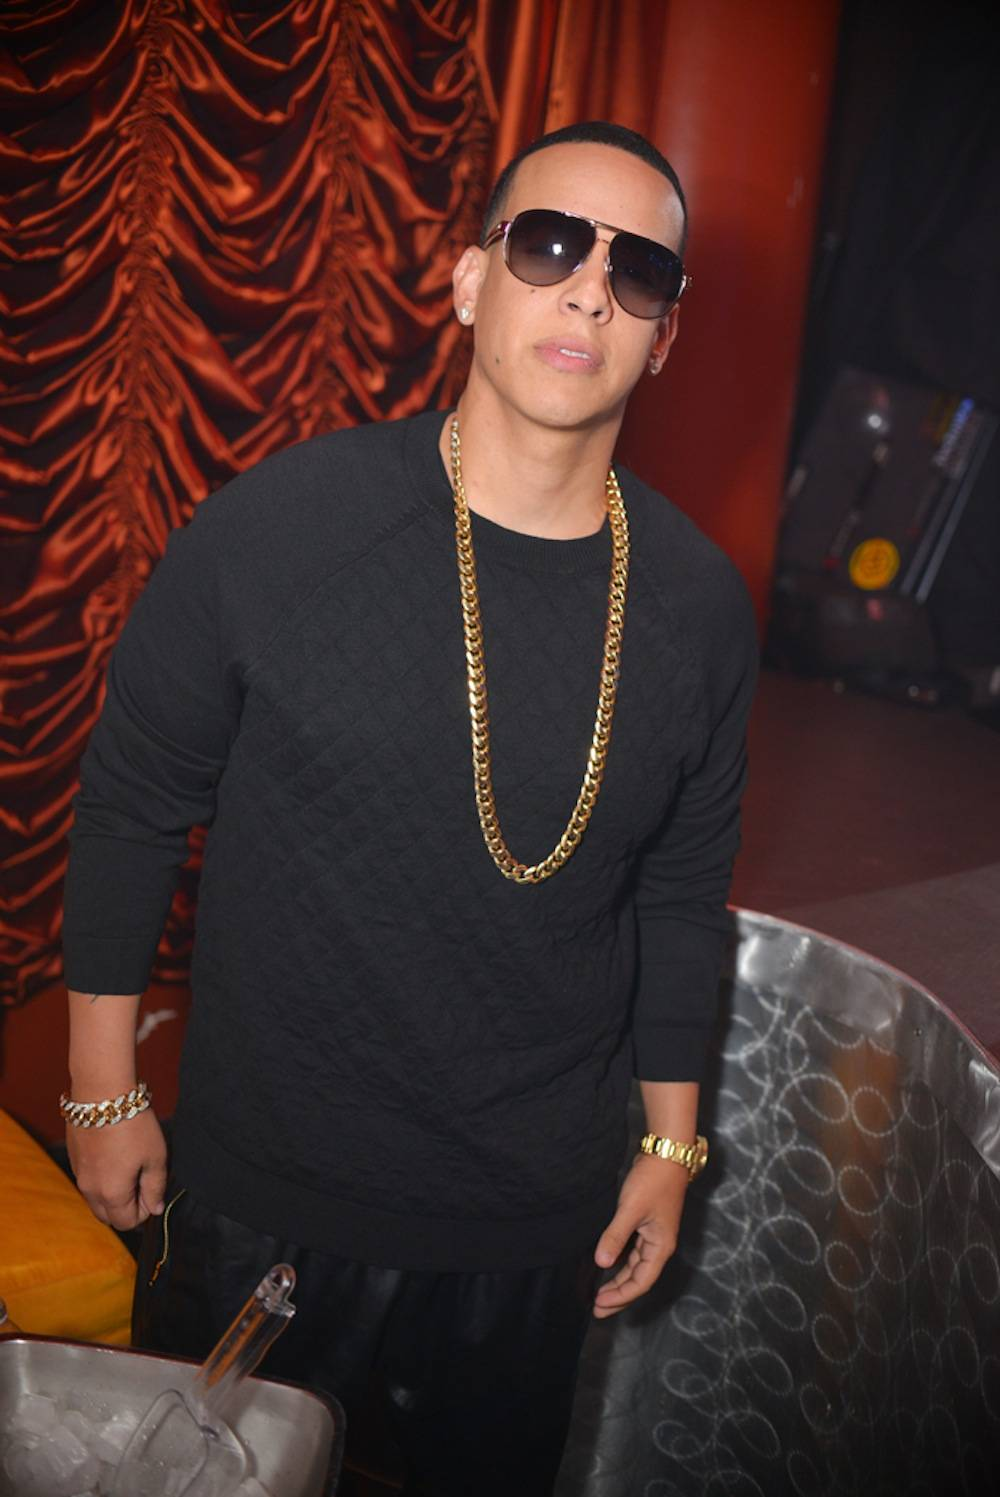 Daddy Yankee at Surrender Nightclub. Photos: Aaron Garcia